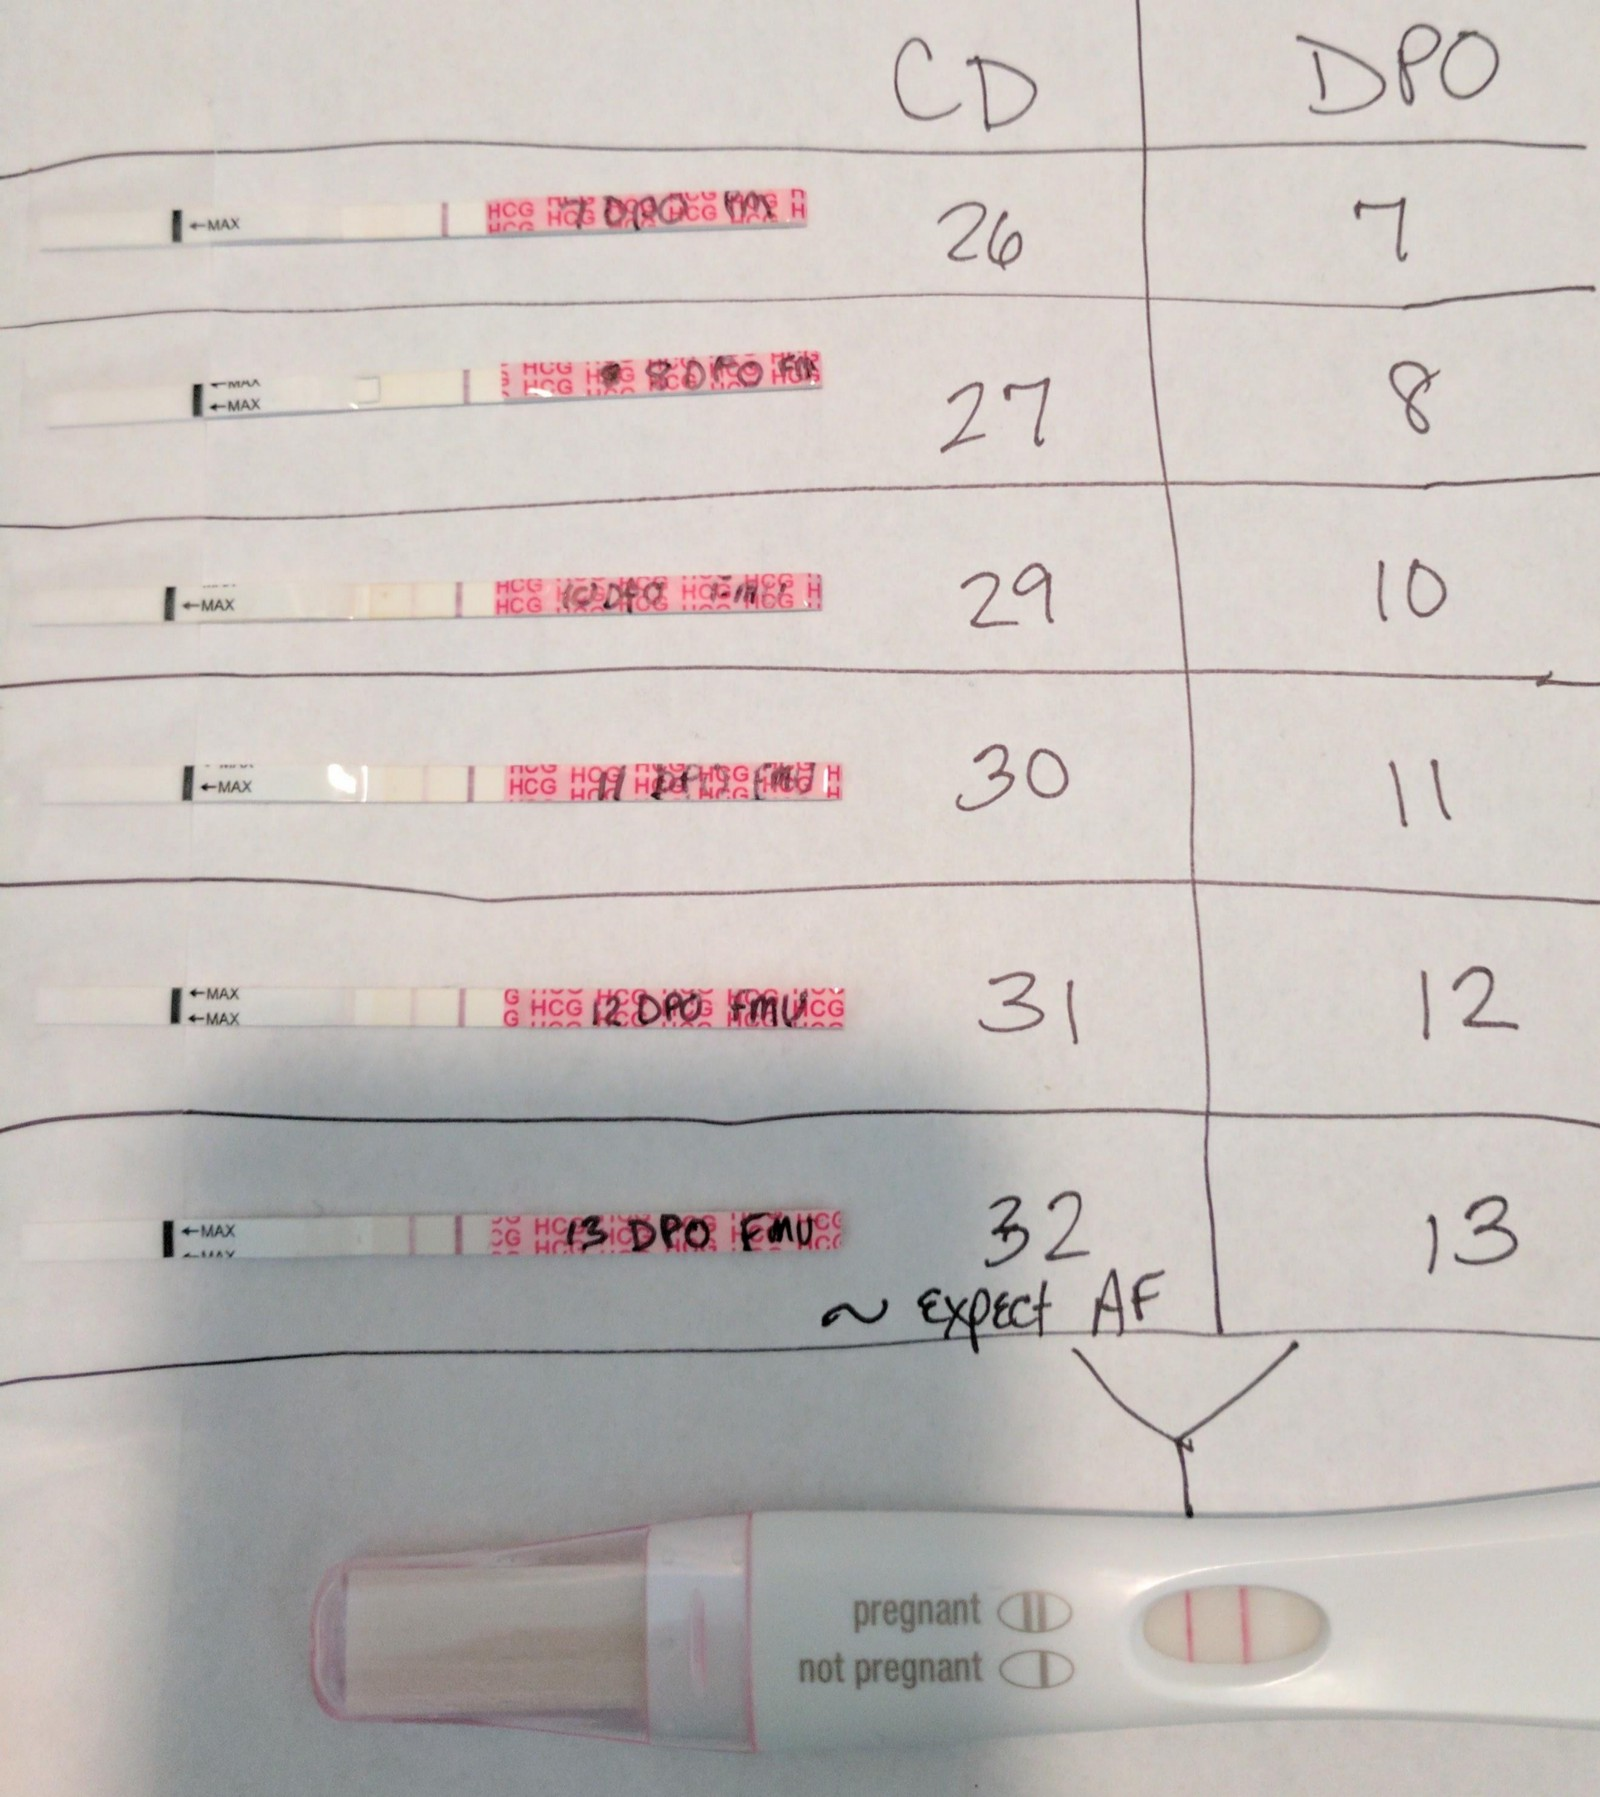 7 Dpo When Should I Take A Pregnancy Test Nasa Alana Medium